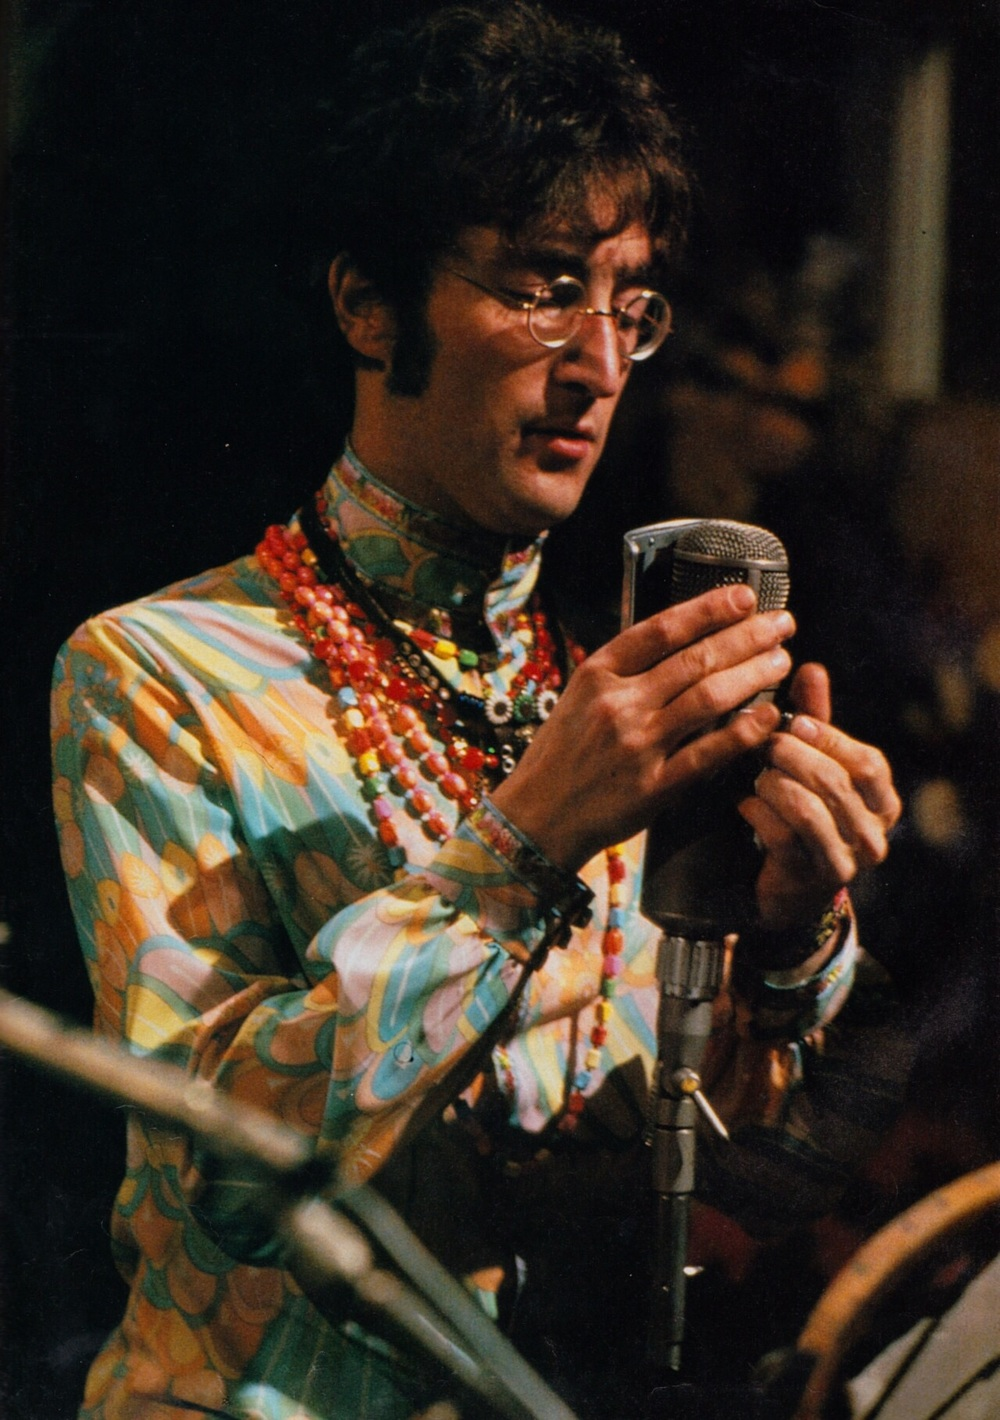 John Lennon performing All You Need Is Love, 1967.